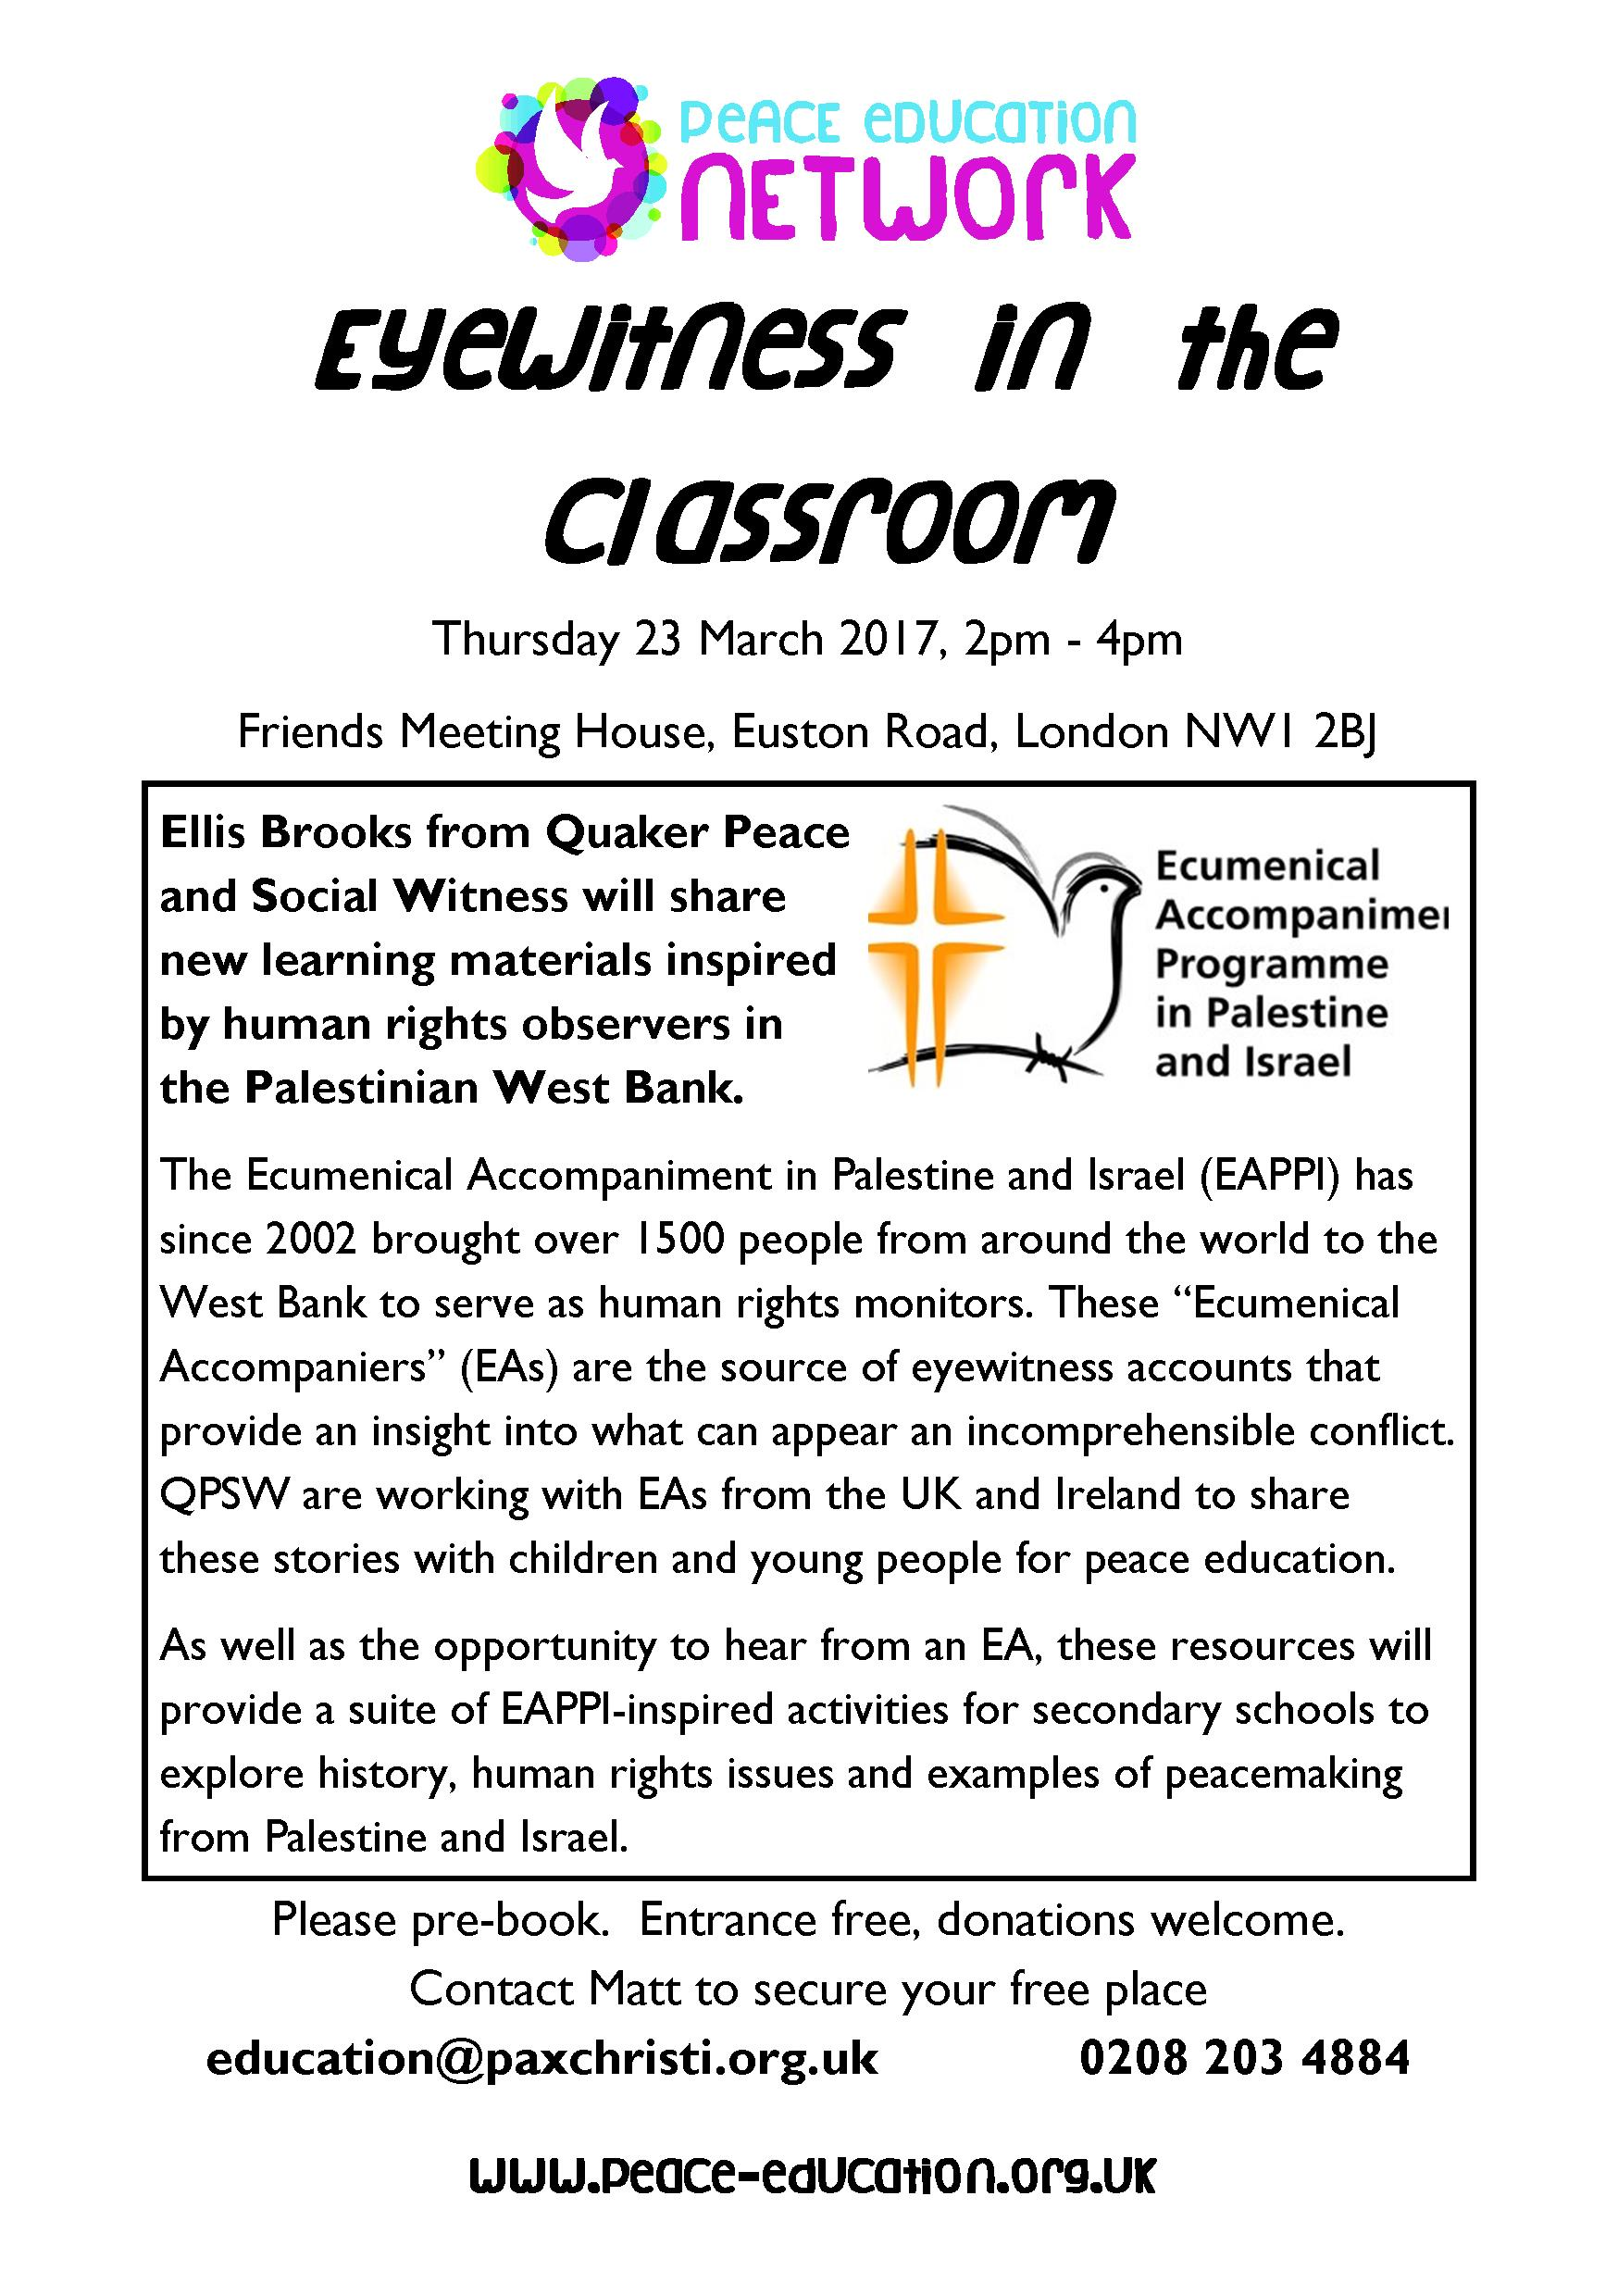 Workshop Flyer - March 2017 - Eyewitness in the Classroom